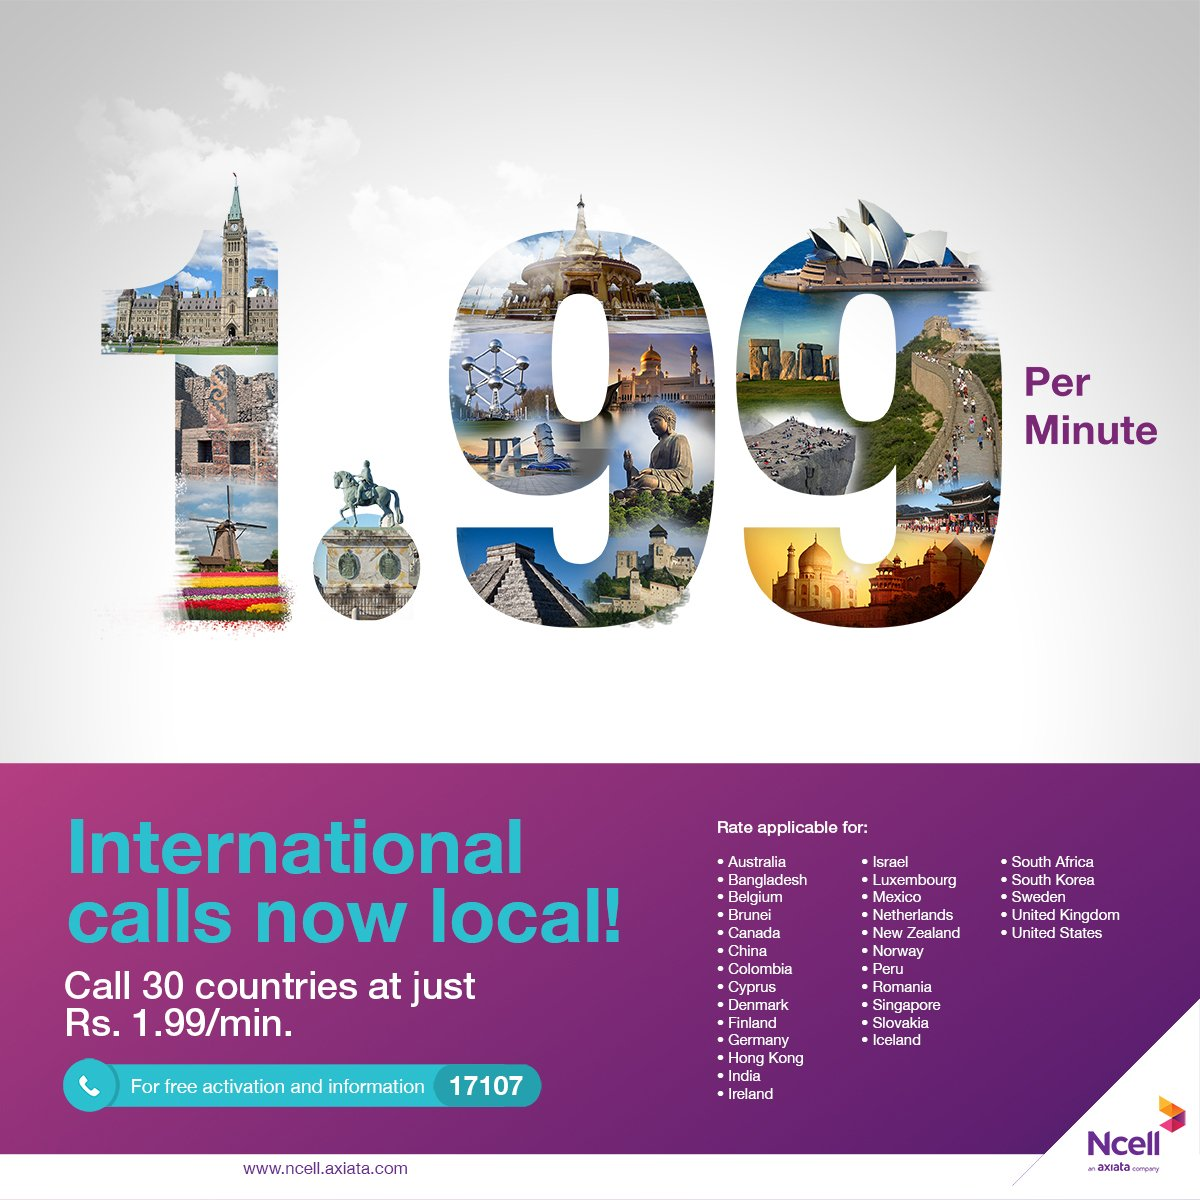 Ncell on Twitter: